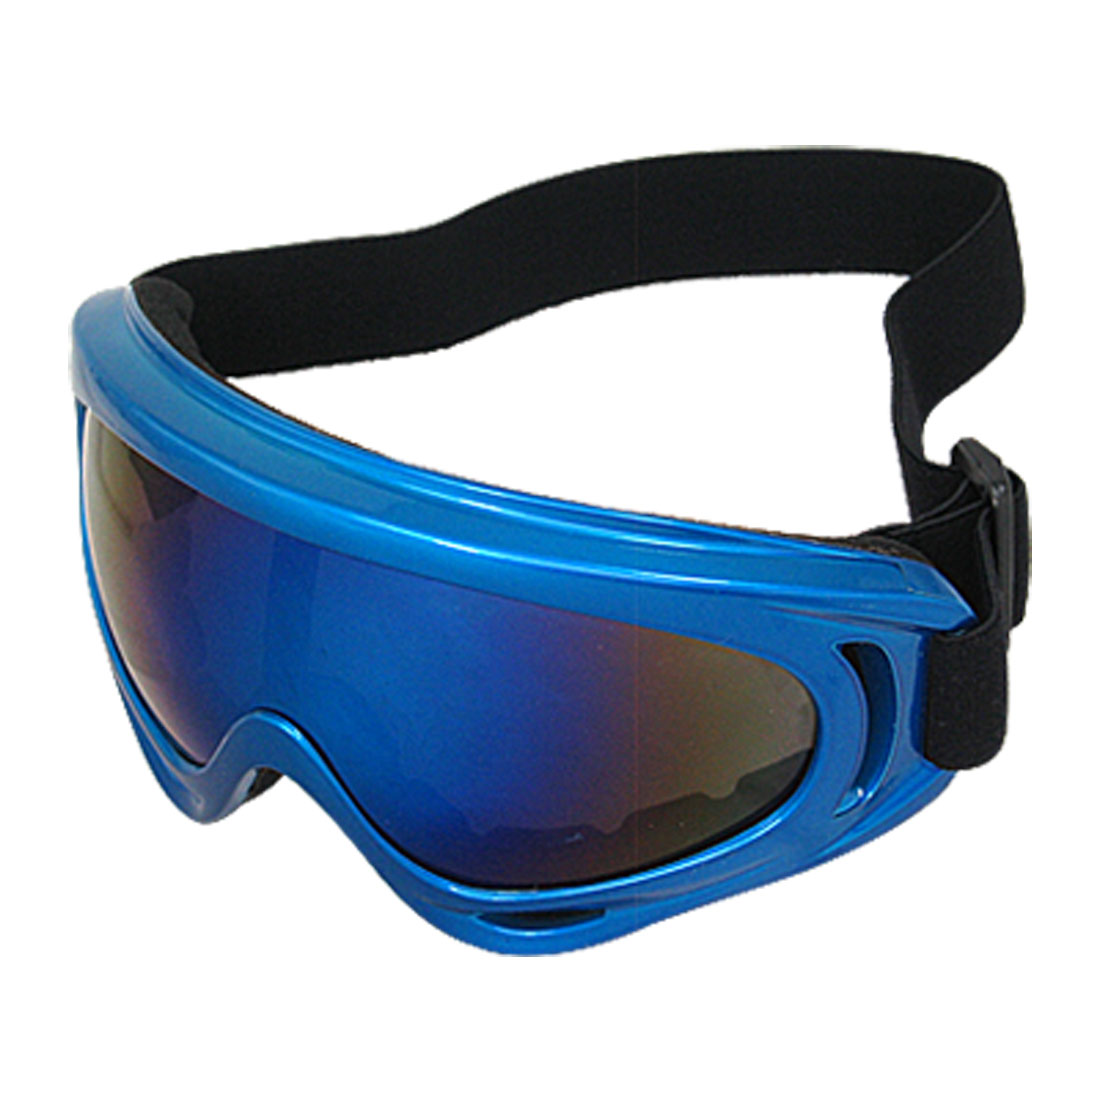 Big Lens Blue Frame Skiing Goggle Racing Snowboard Sports Glasses